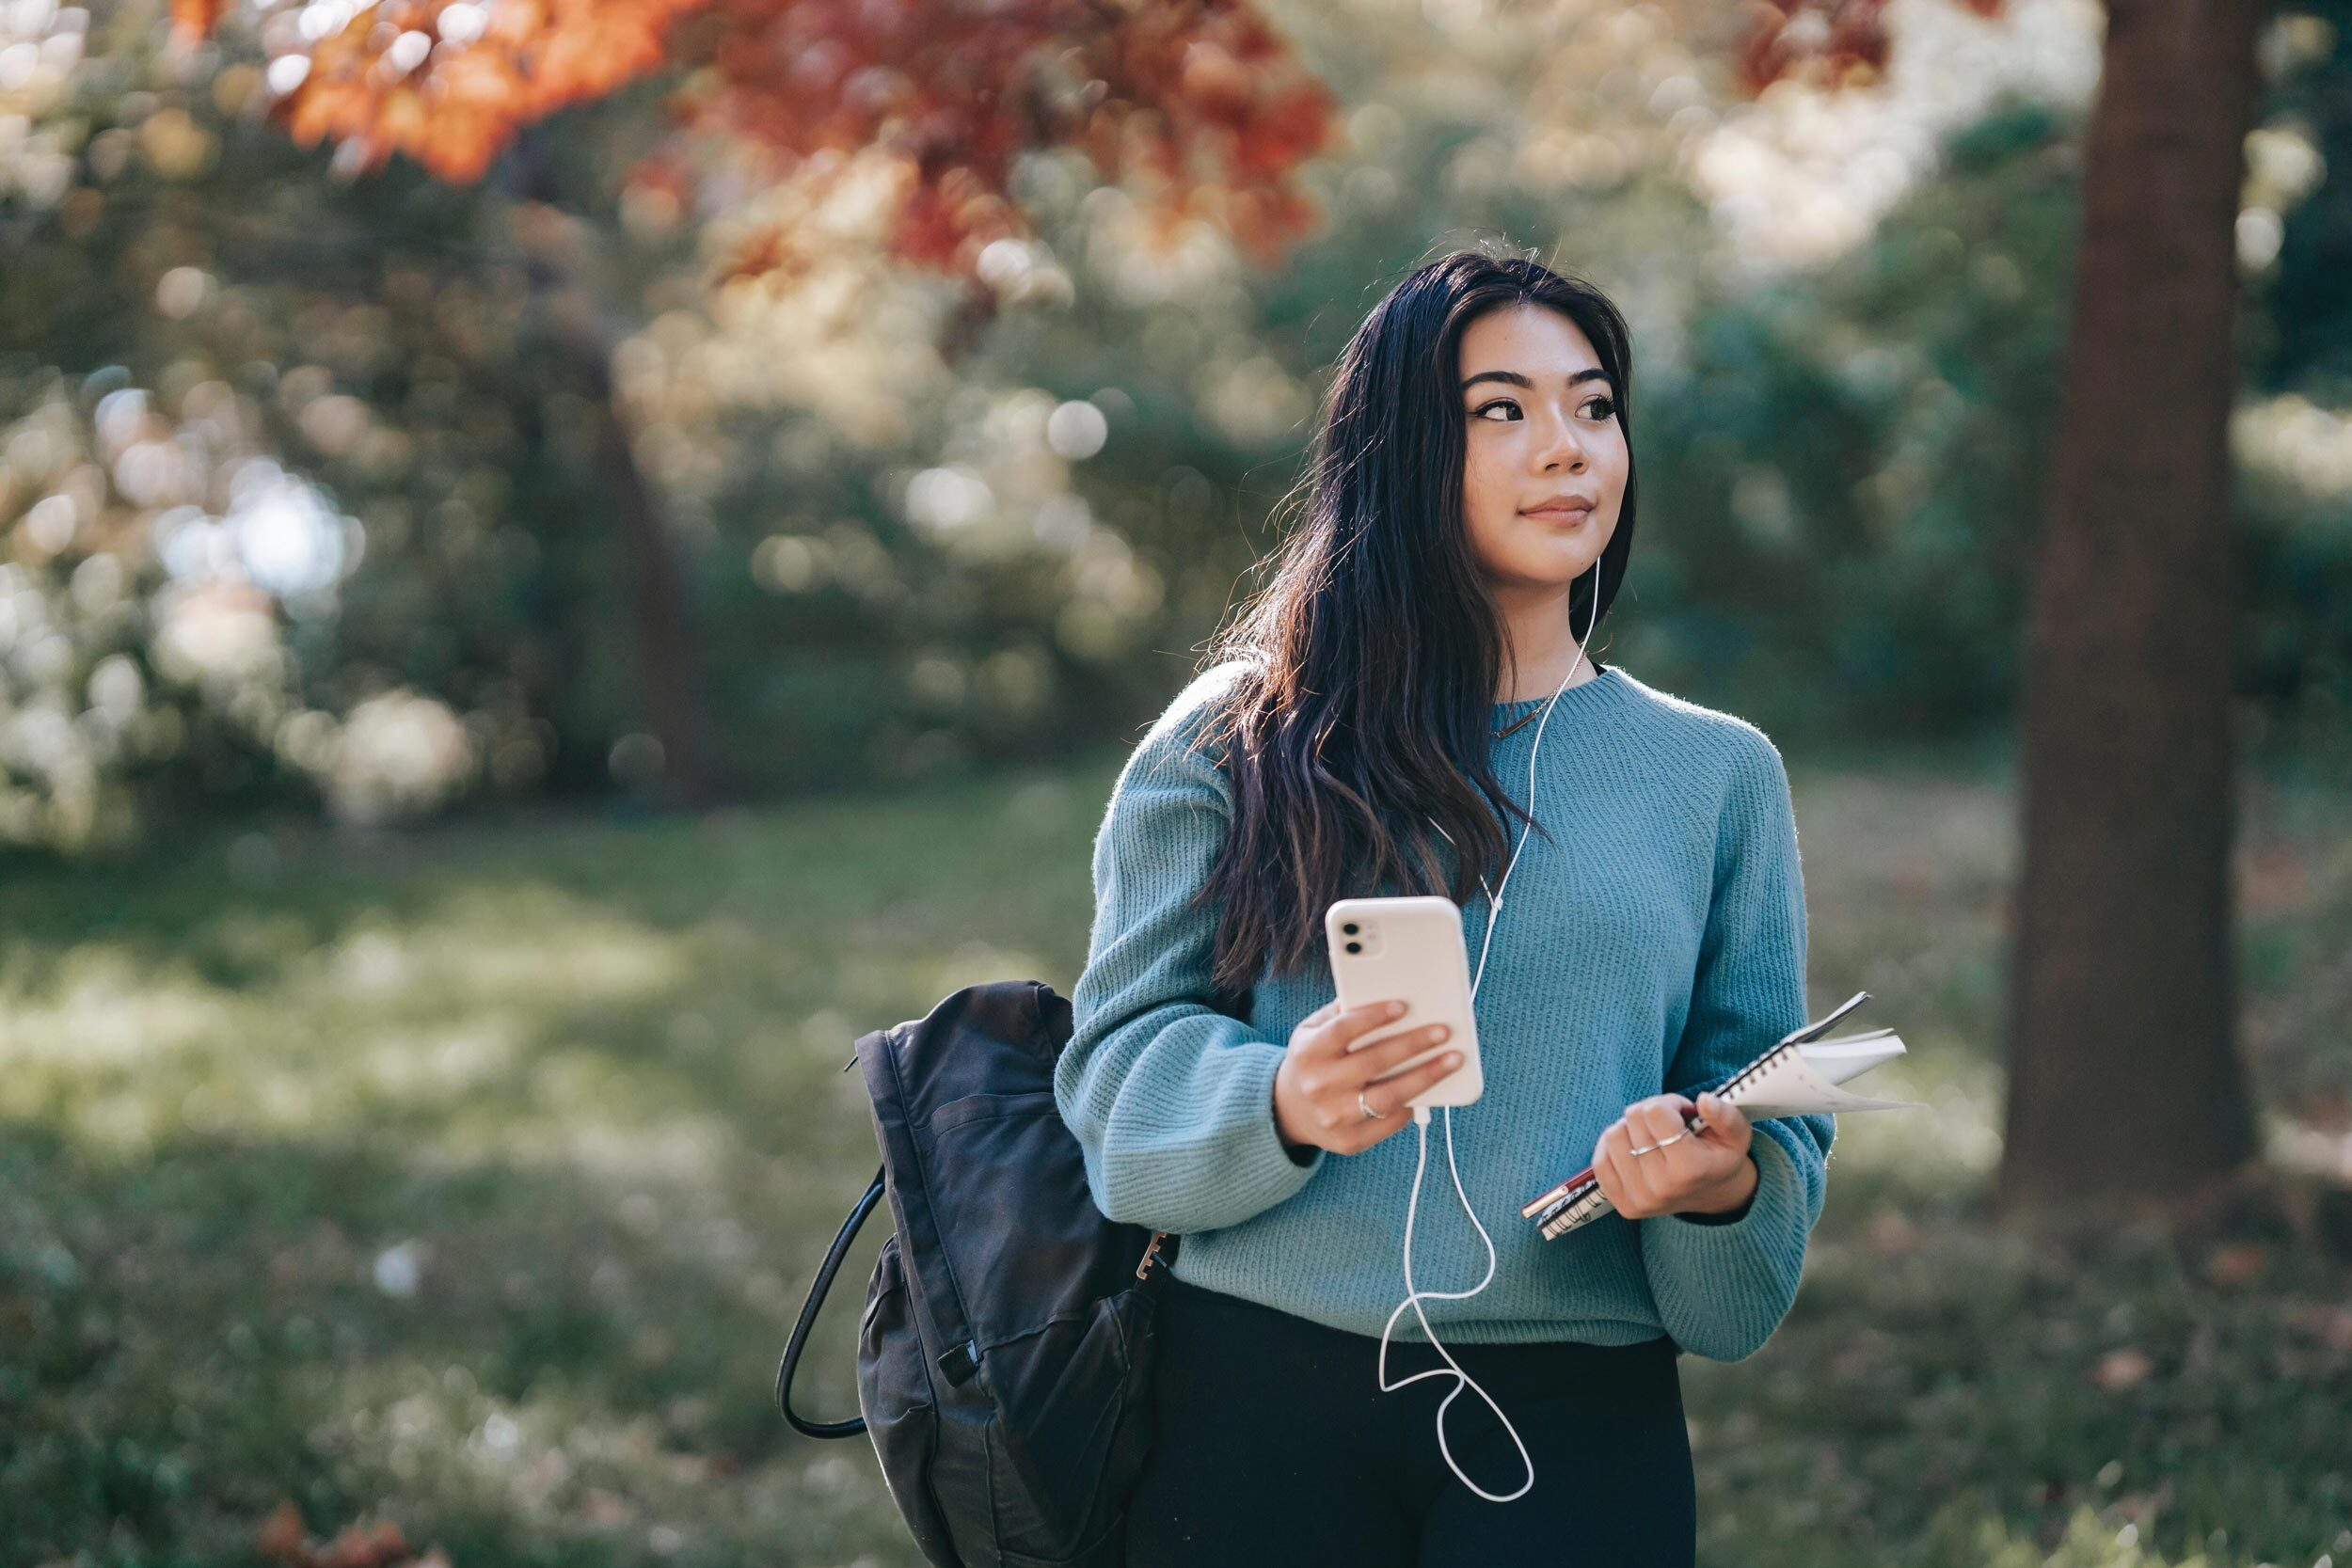 Student with notepad and phone walking through the woods